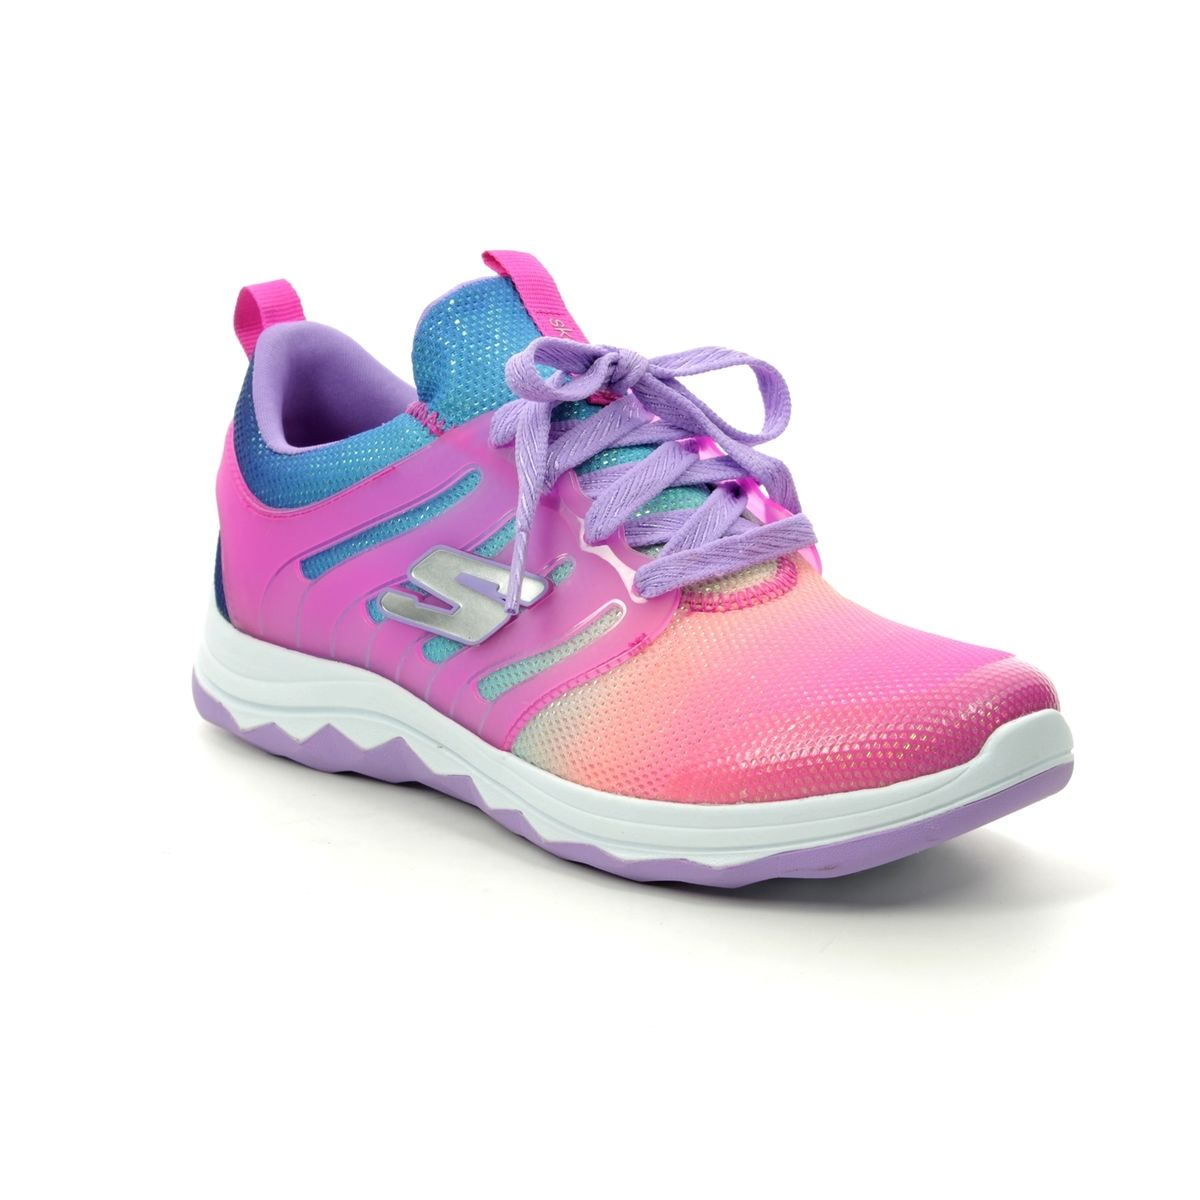 9c28b650f159 Skechers Diamond Runner 81562 NPMT PINK MULTI trainers